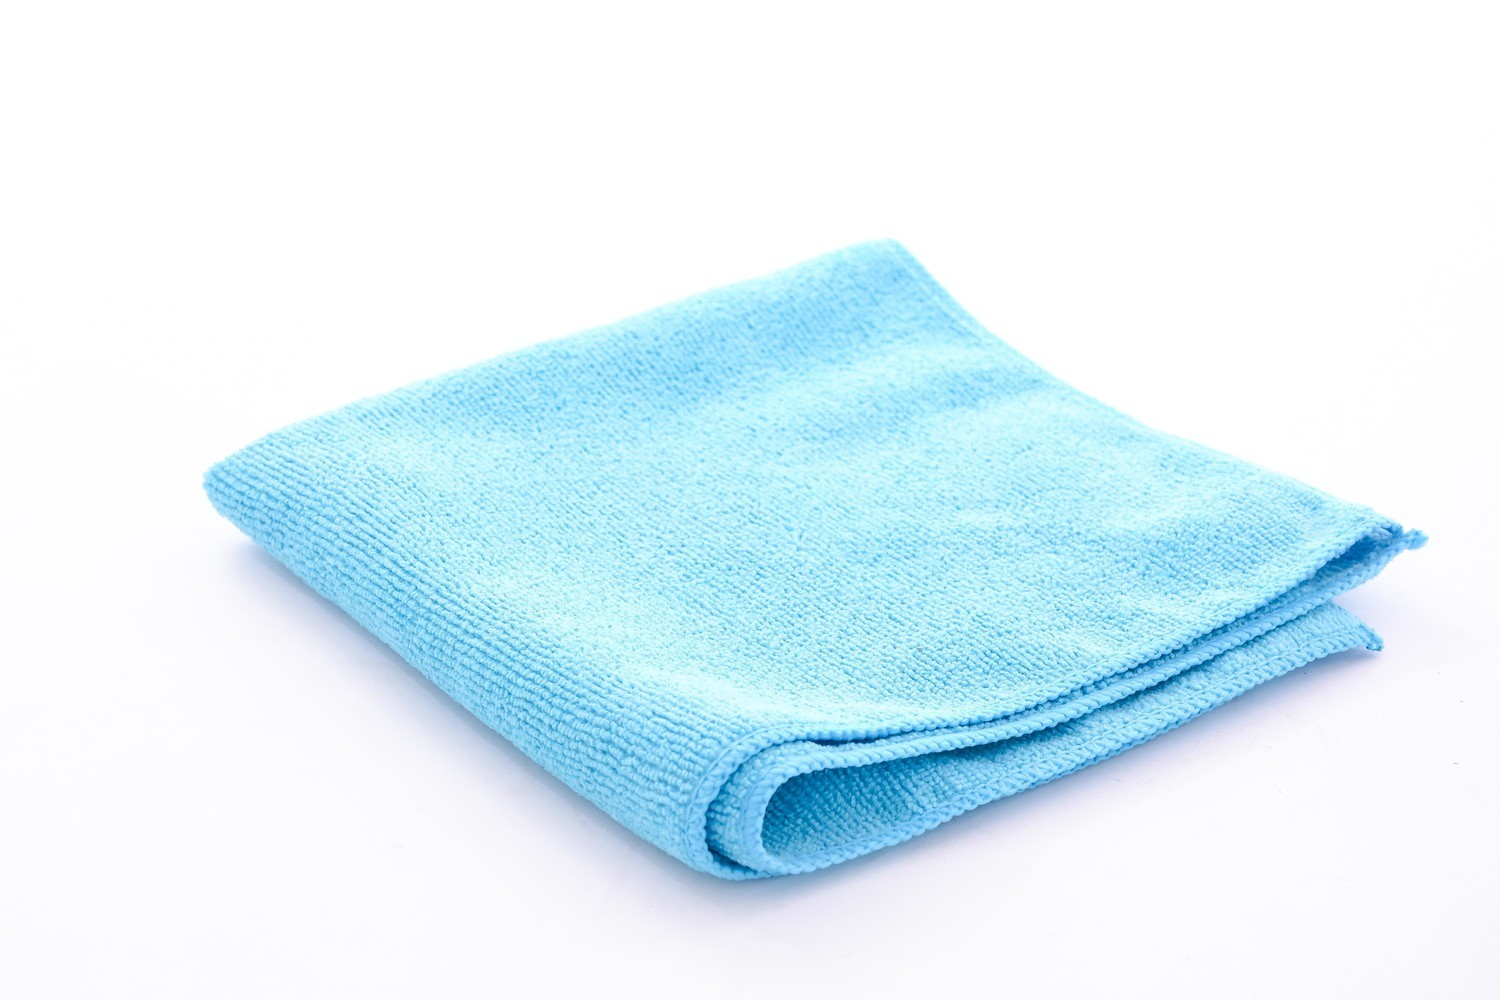 Microfiber towel ClearVision